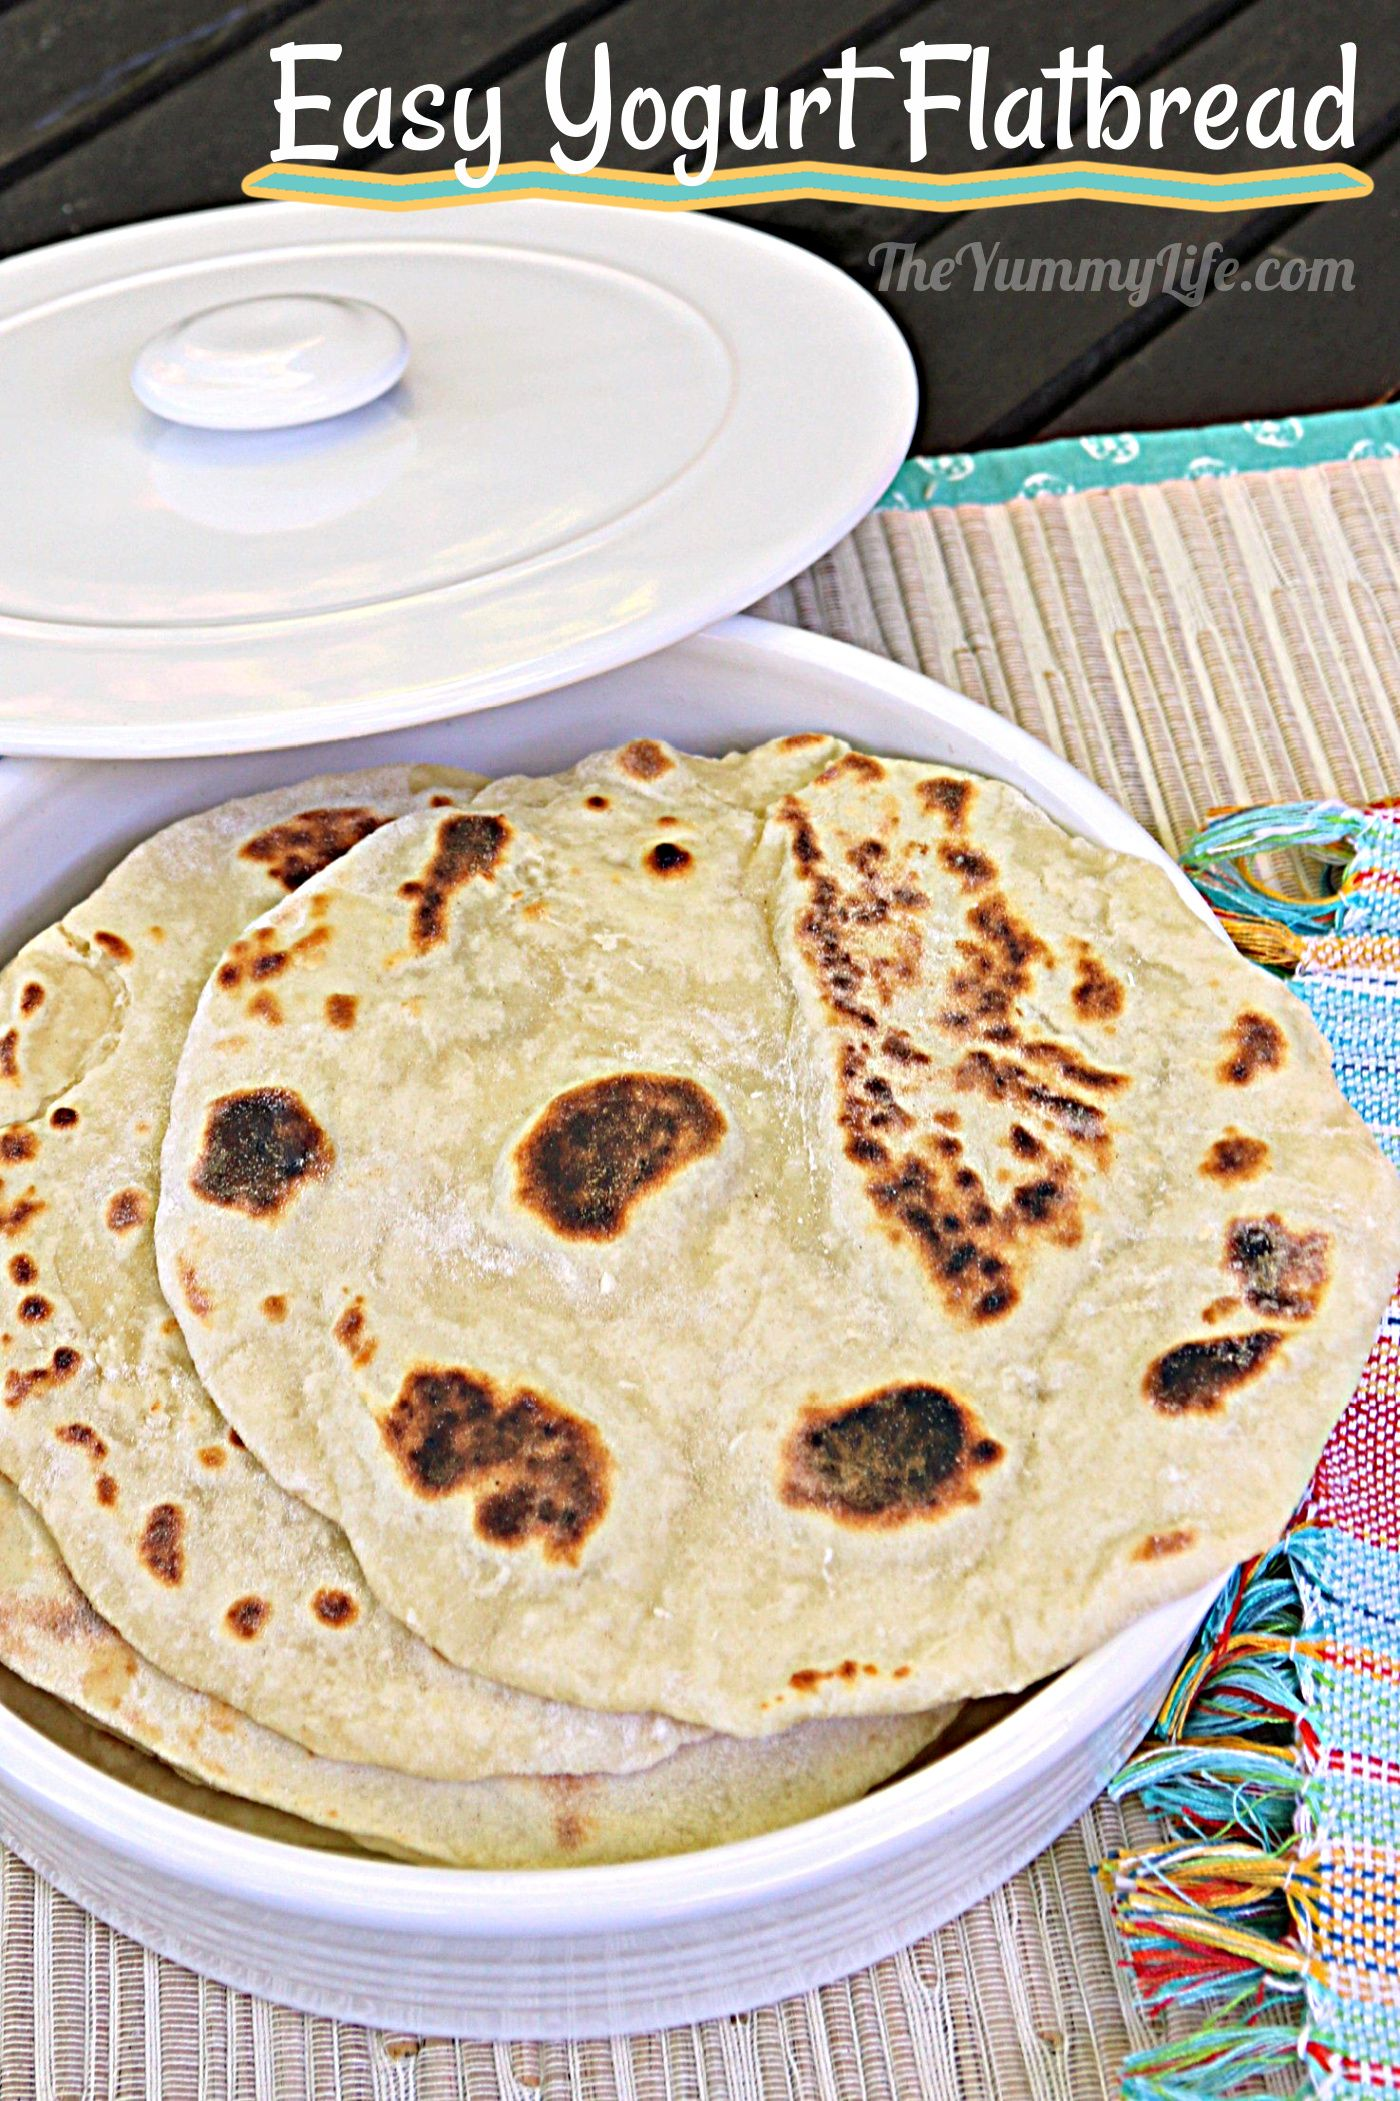 This India-inspired flatbread is so easy and versatile with make-ahead convenience. Serve it with soups, dips and spreads, or any meal. Great to use as a wrap or tortilla, too.